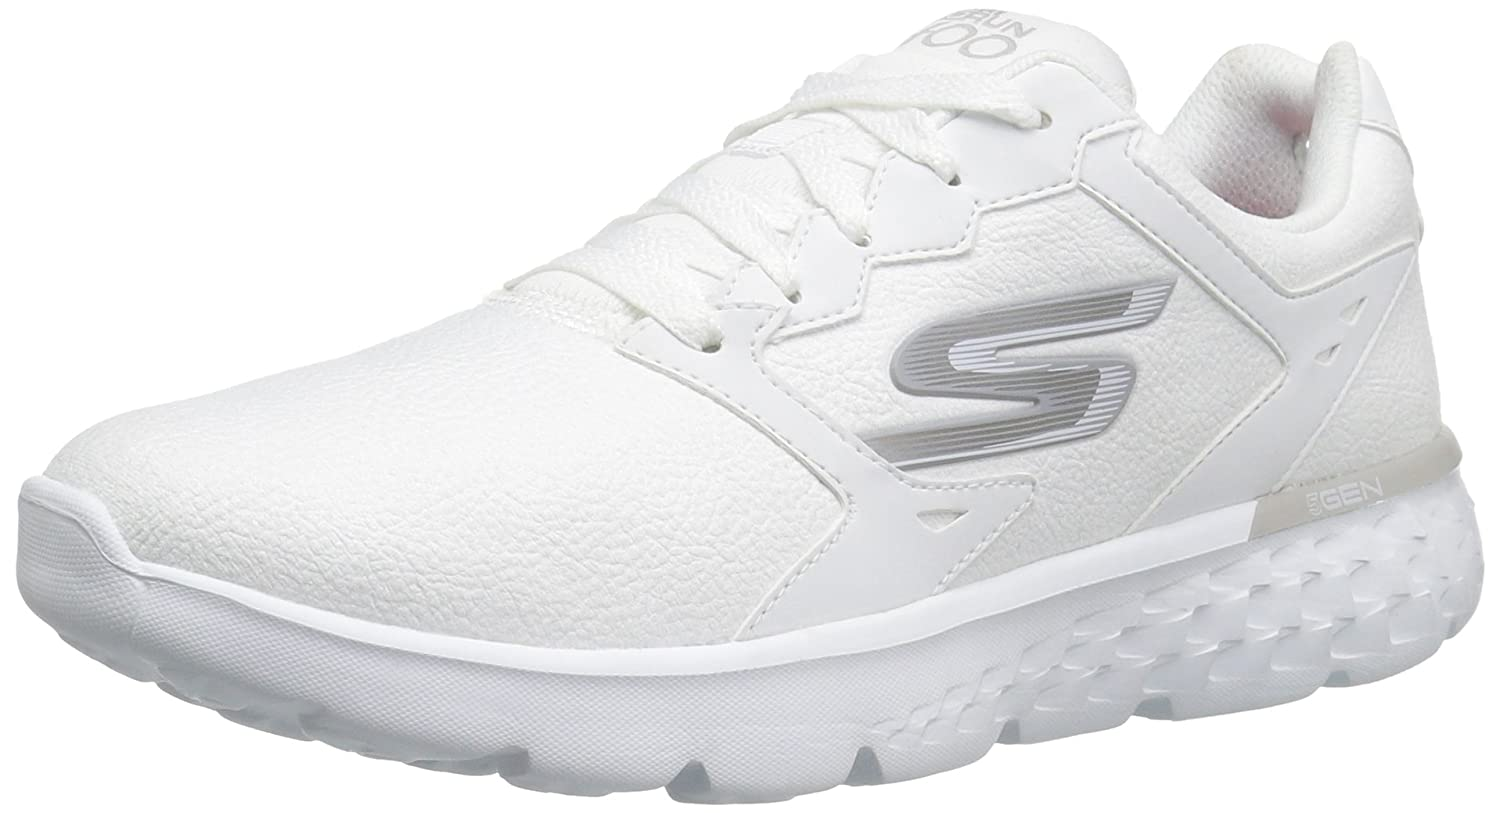 Skechers Performance Women's Go Run 400 Running Shoe B01CUOJJPA 7 B(M) US|White